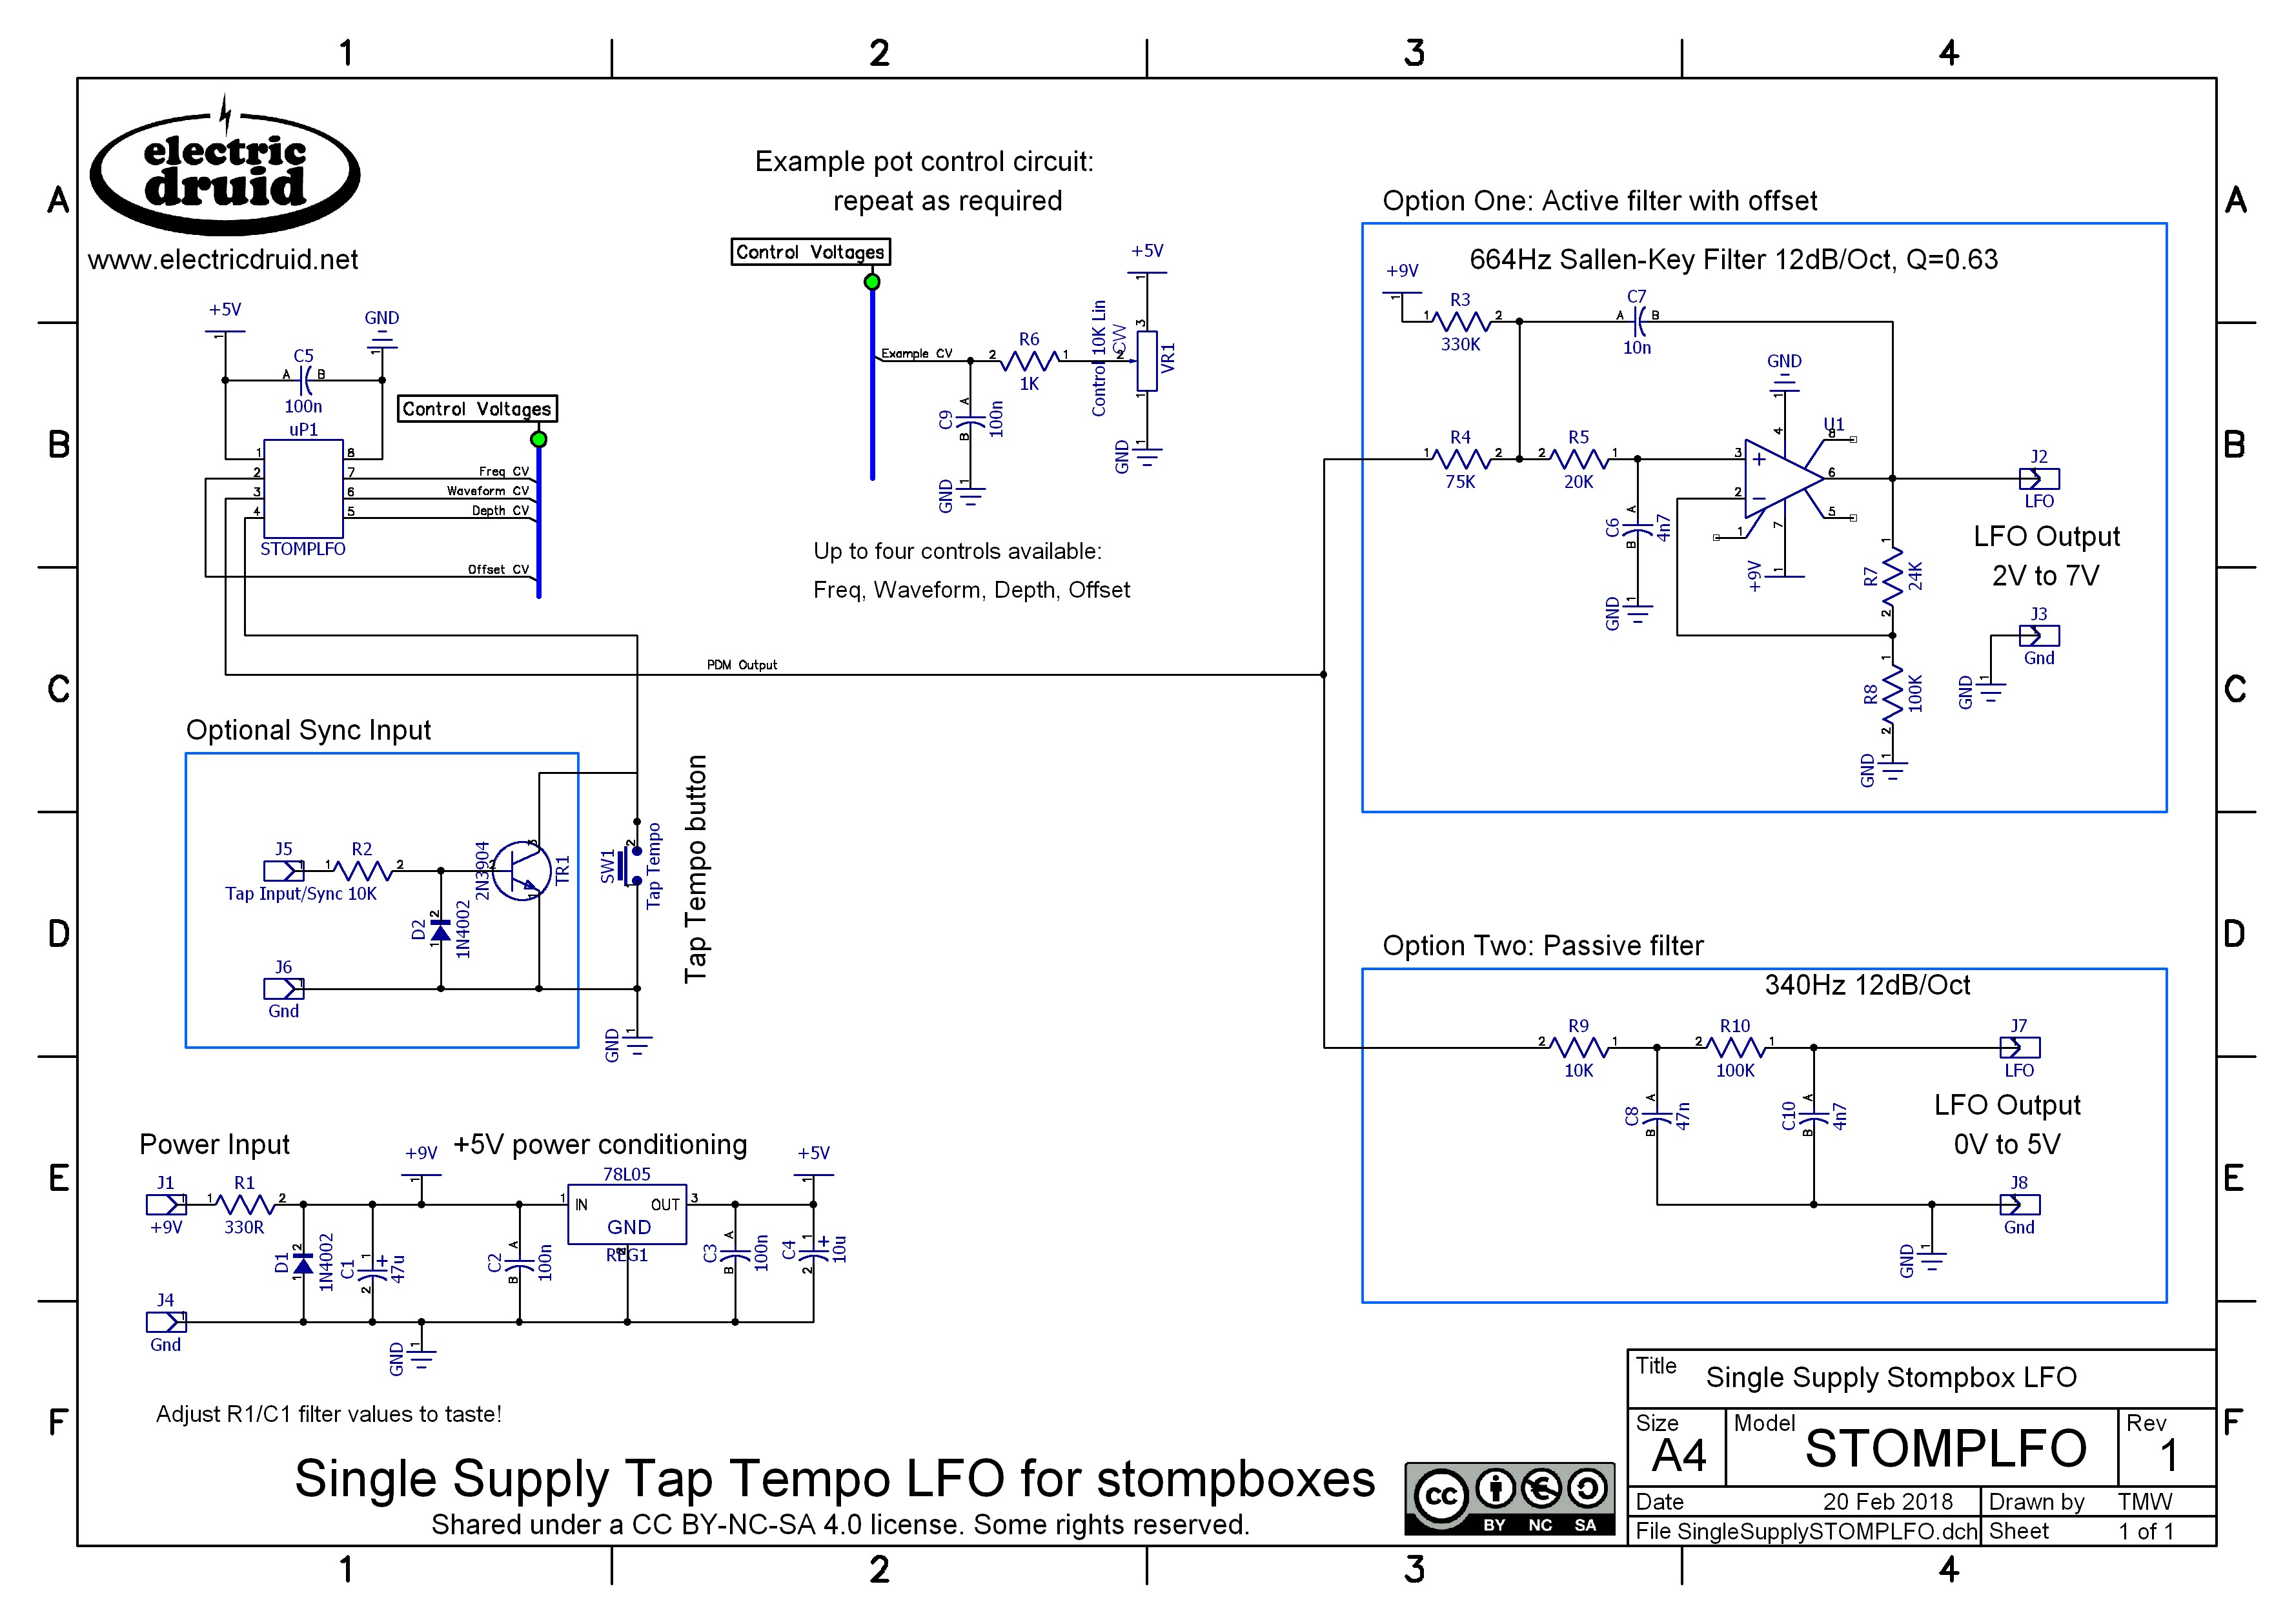 Electric Druid Chips The Next Generation 5v Power Supply Wiring Diagram Stomplfo 8 Pin Tap Tempo Lfo Circuit